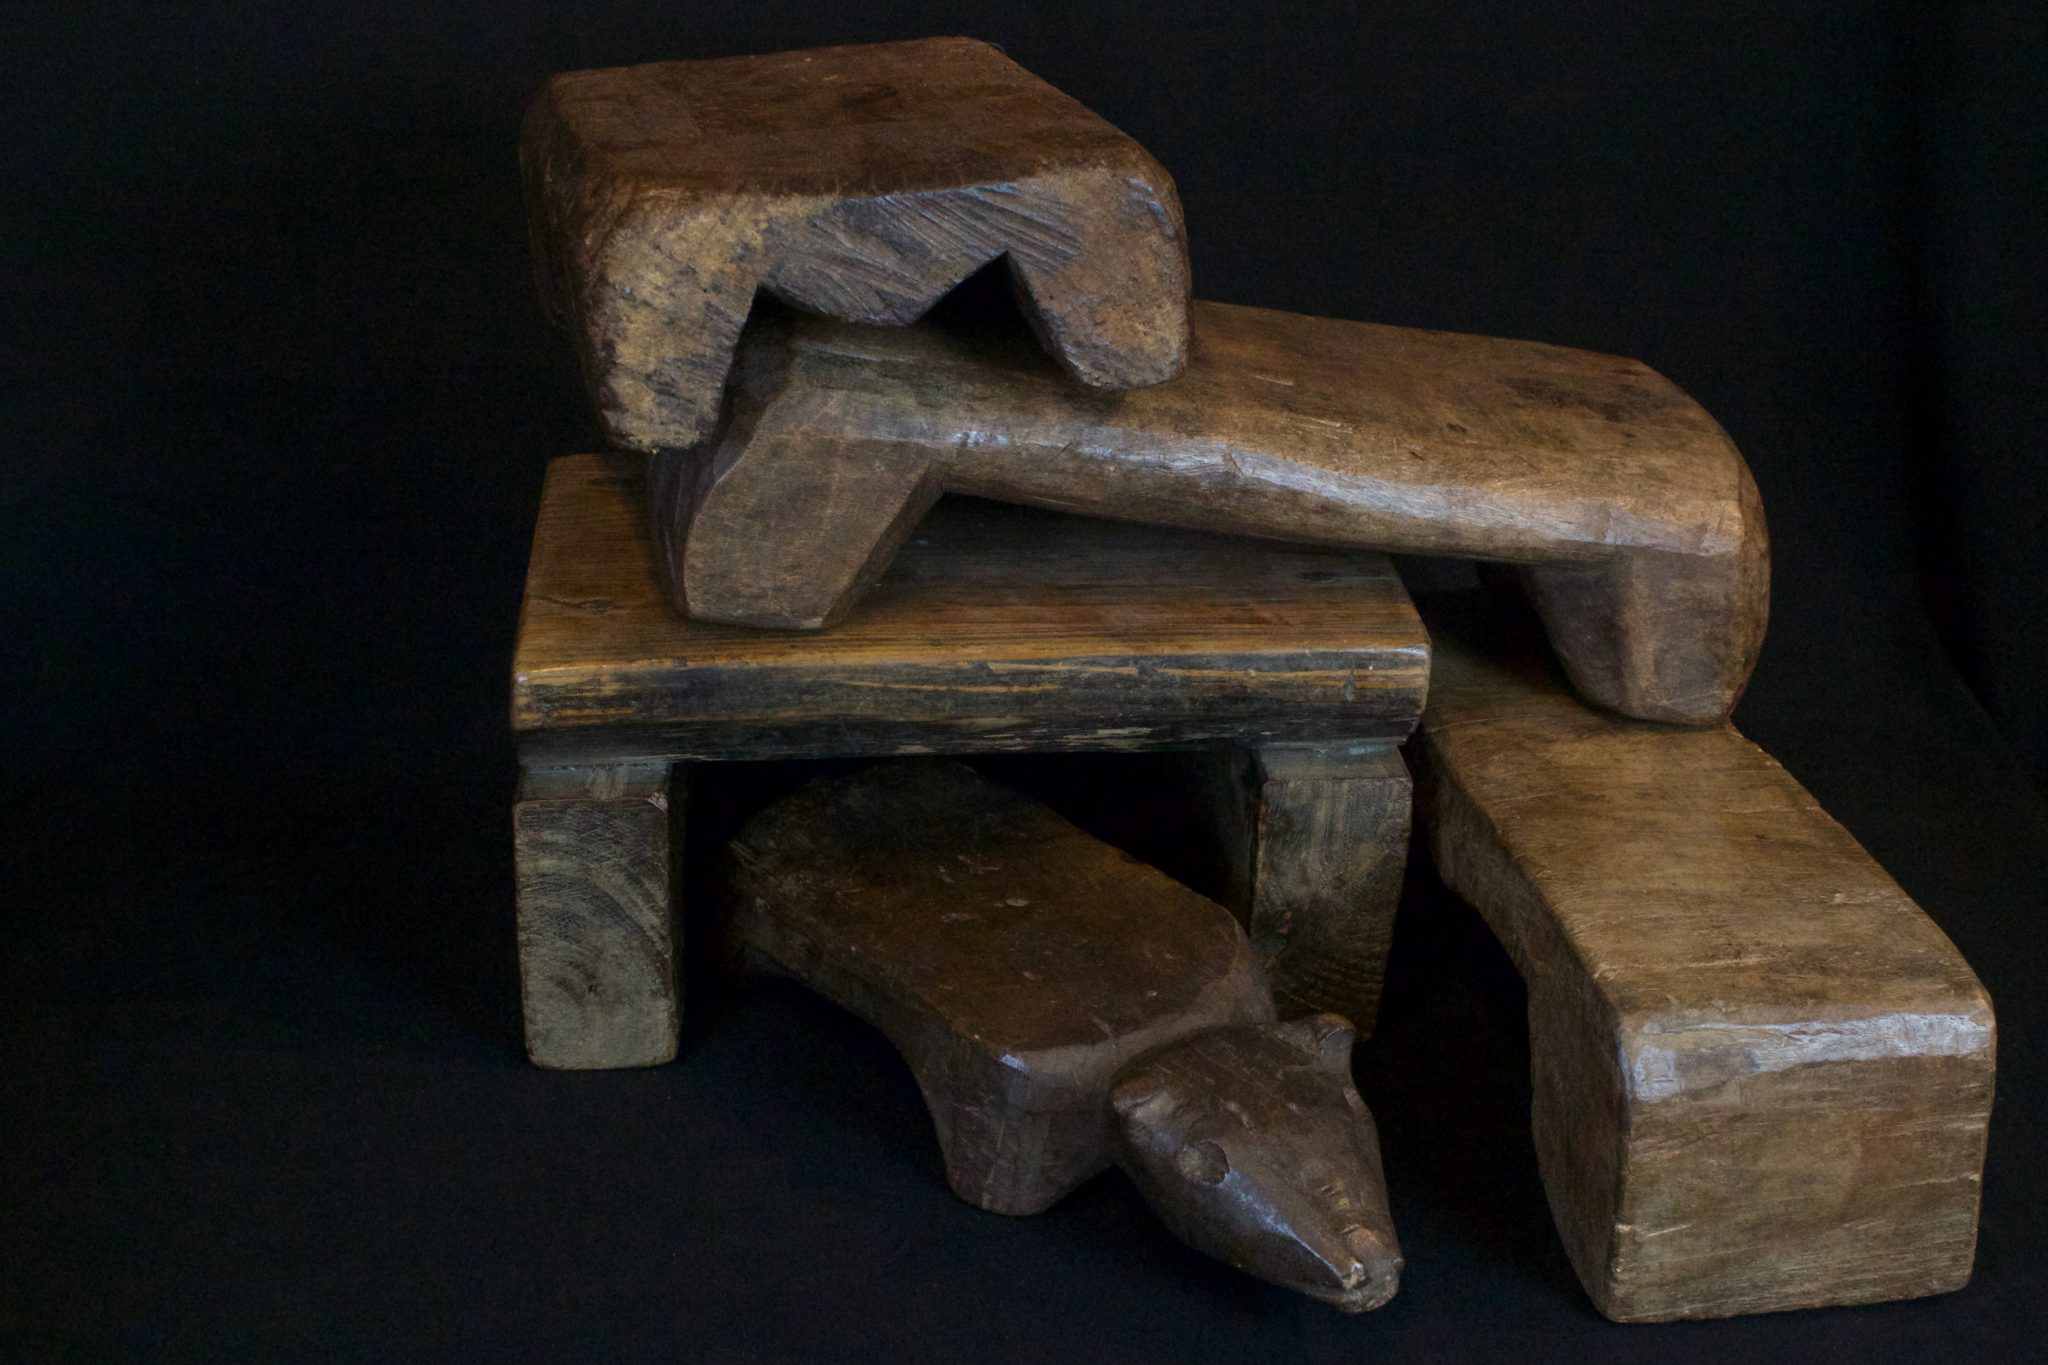 "Hand Carved Wooden Ceremonial Shaman Stools, from the late 19th to mid 20th century, Wood, Used for meditation and for ritual ceremonies, Mid 19th to early 20th century, 8"" to 14"", $95. to $190."